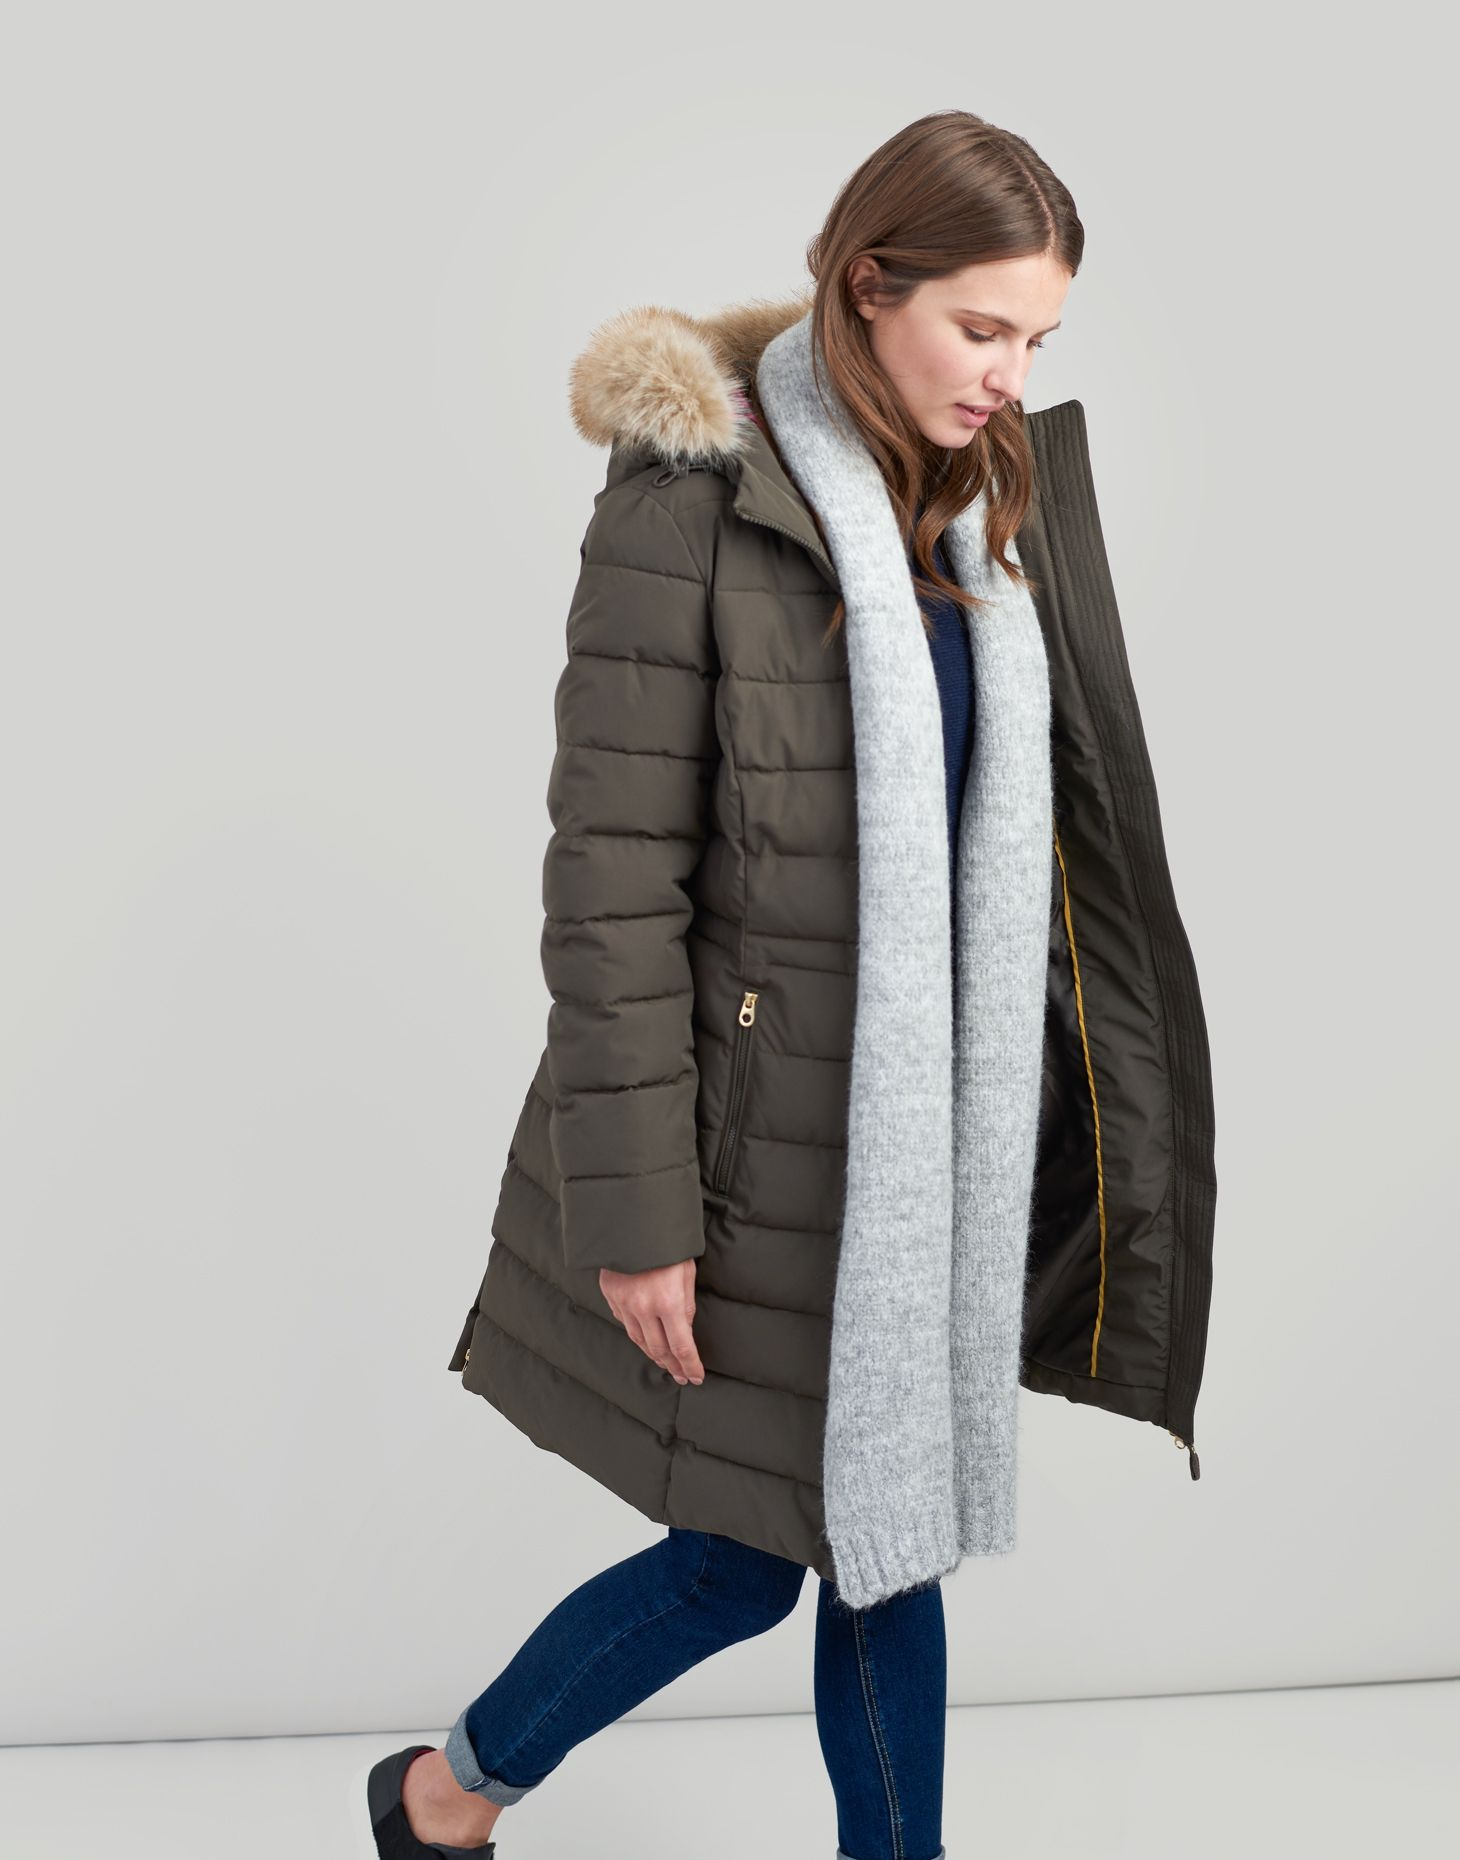 7eb255f57 Sefton BLACK OLIVE Longline Padded Jacket with Faux Fur Hood Trim | Joules  UK